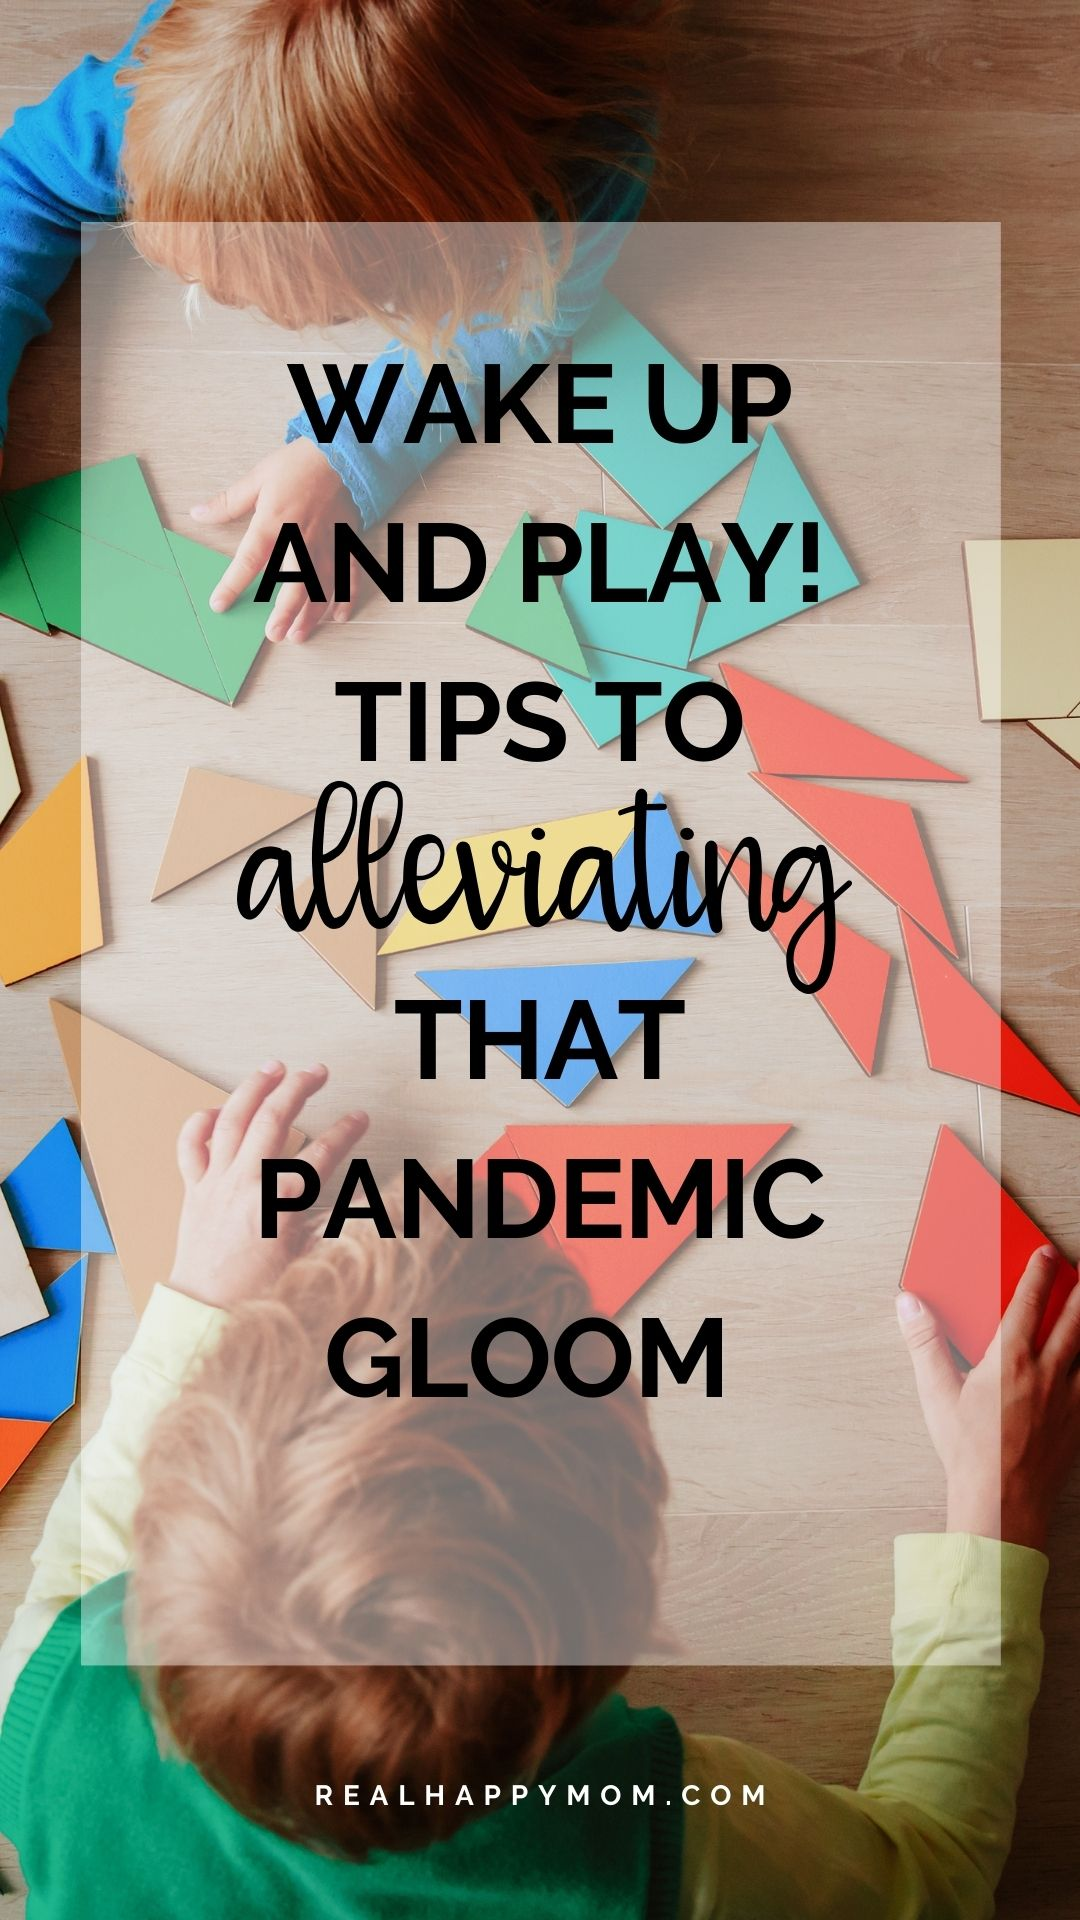 Wake Up and Play! Tips to Alleviating that Pandemic Gloom